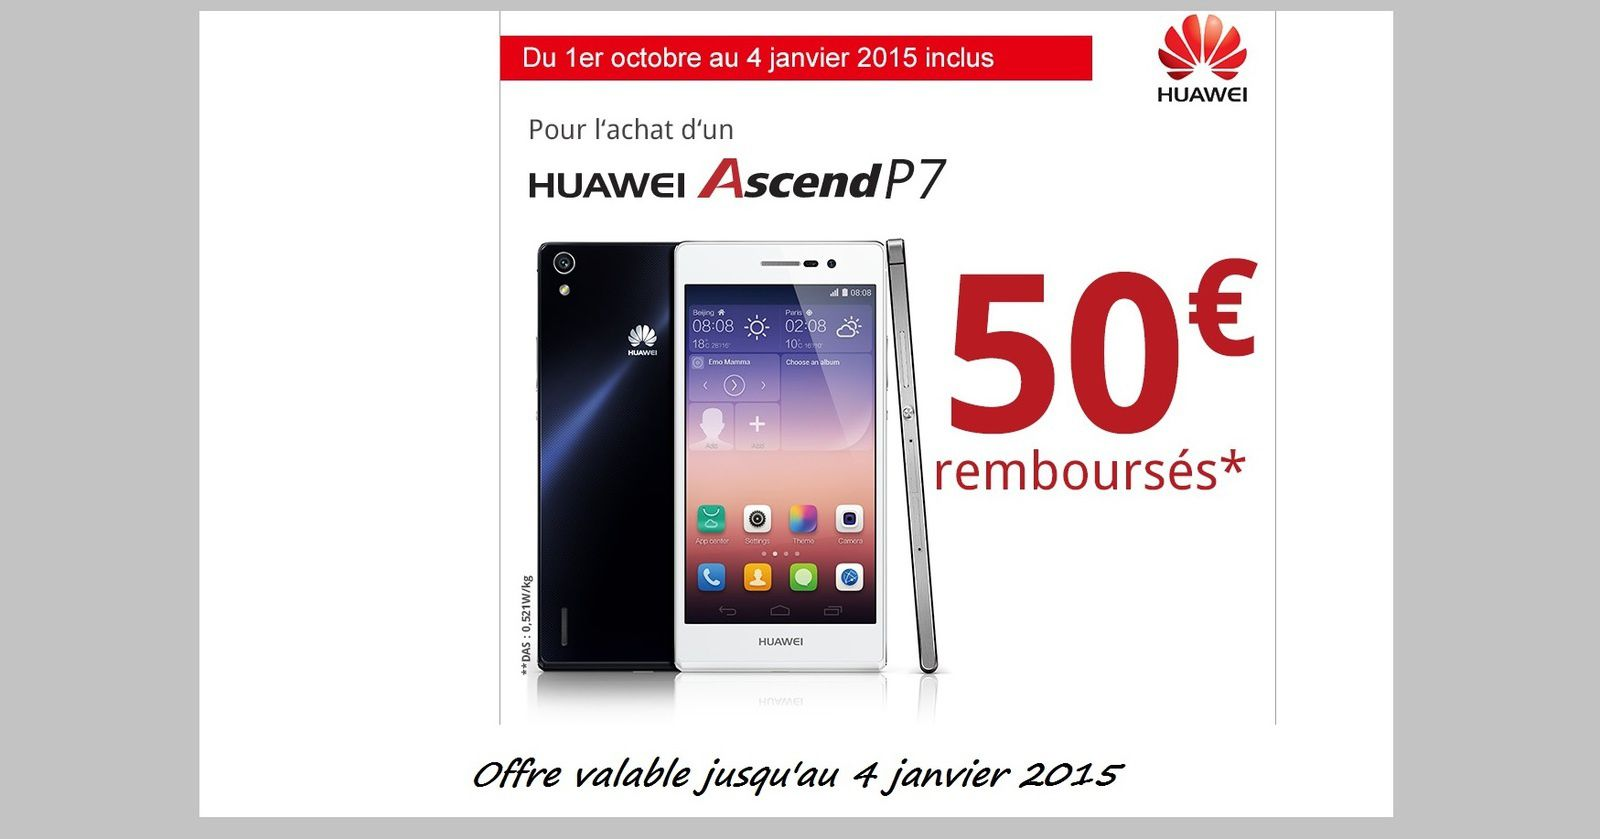 huawei ascend p7 16 go 4g 50 euros rembours s le blog bon plan mobile bon plan smartphone. Black Bedroom Furniture Sets. Home Design Ideas